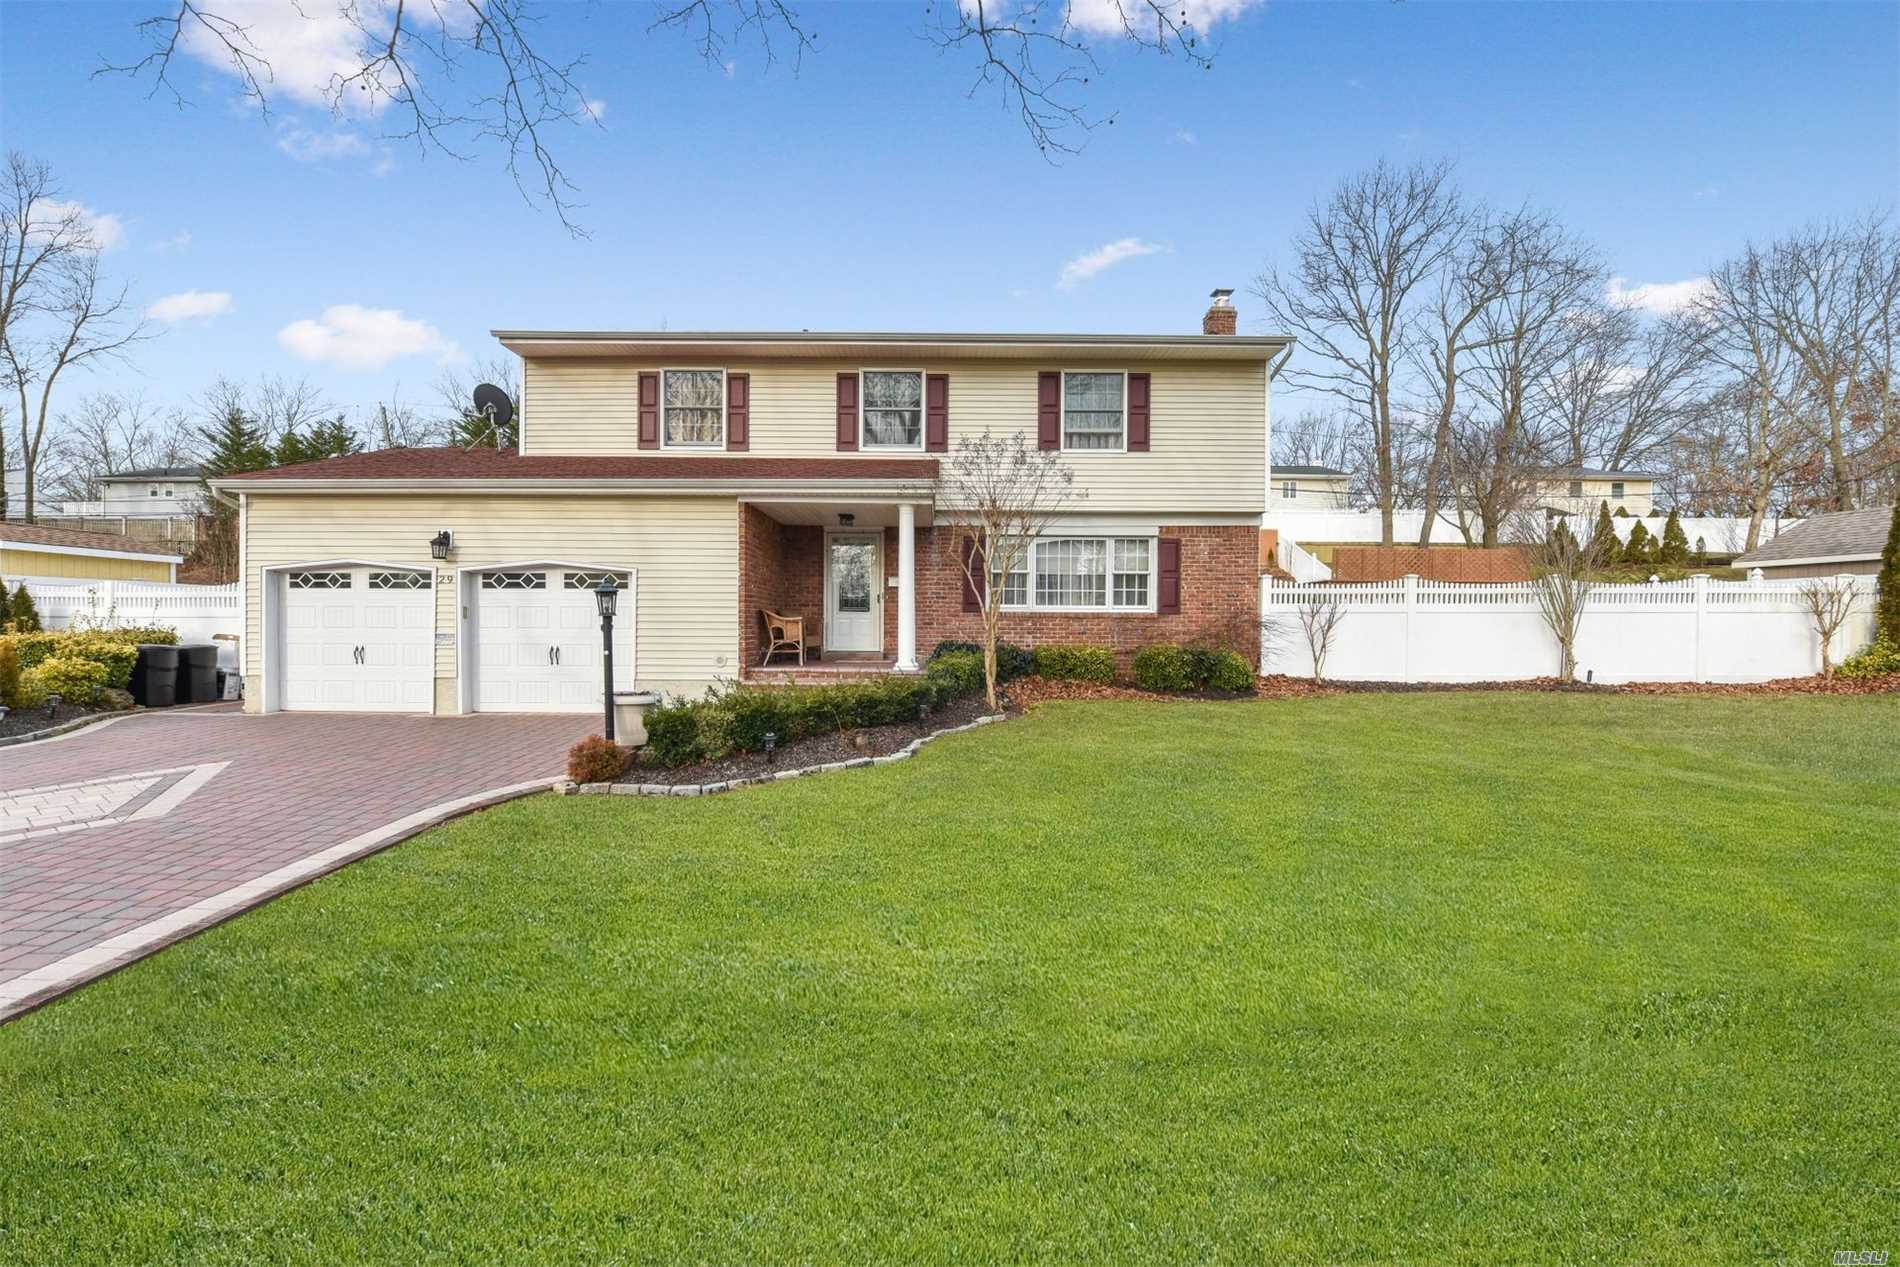 Must See! Beautifully Updated 4 Bedroom, 2.5 Bath Colonial With Gourmet Eat-In-Kitchen And Granite Counters. Stunning Backyard Featuring An Above Ground 24' Round Pool With Deck And A Large Patio With Automatic Awning.Automatic Lights Light Up Fabulous Garden